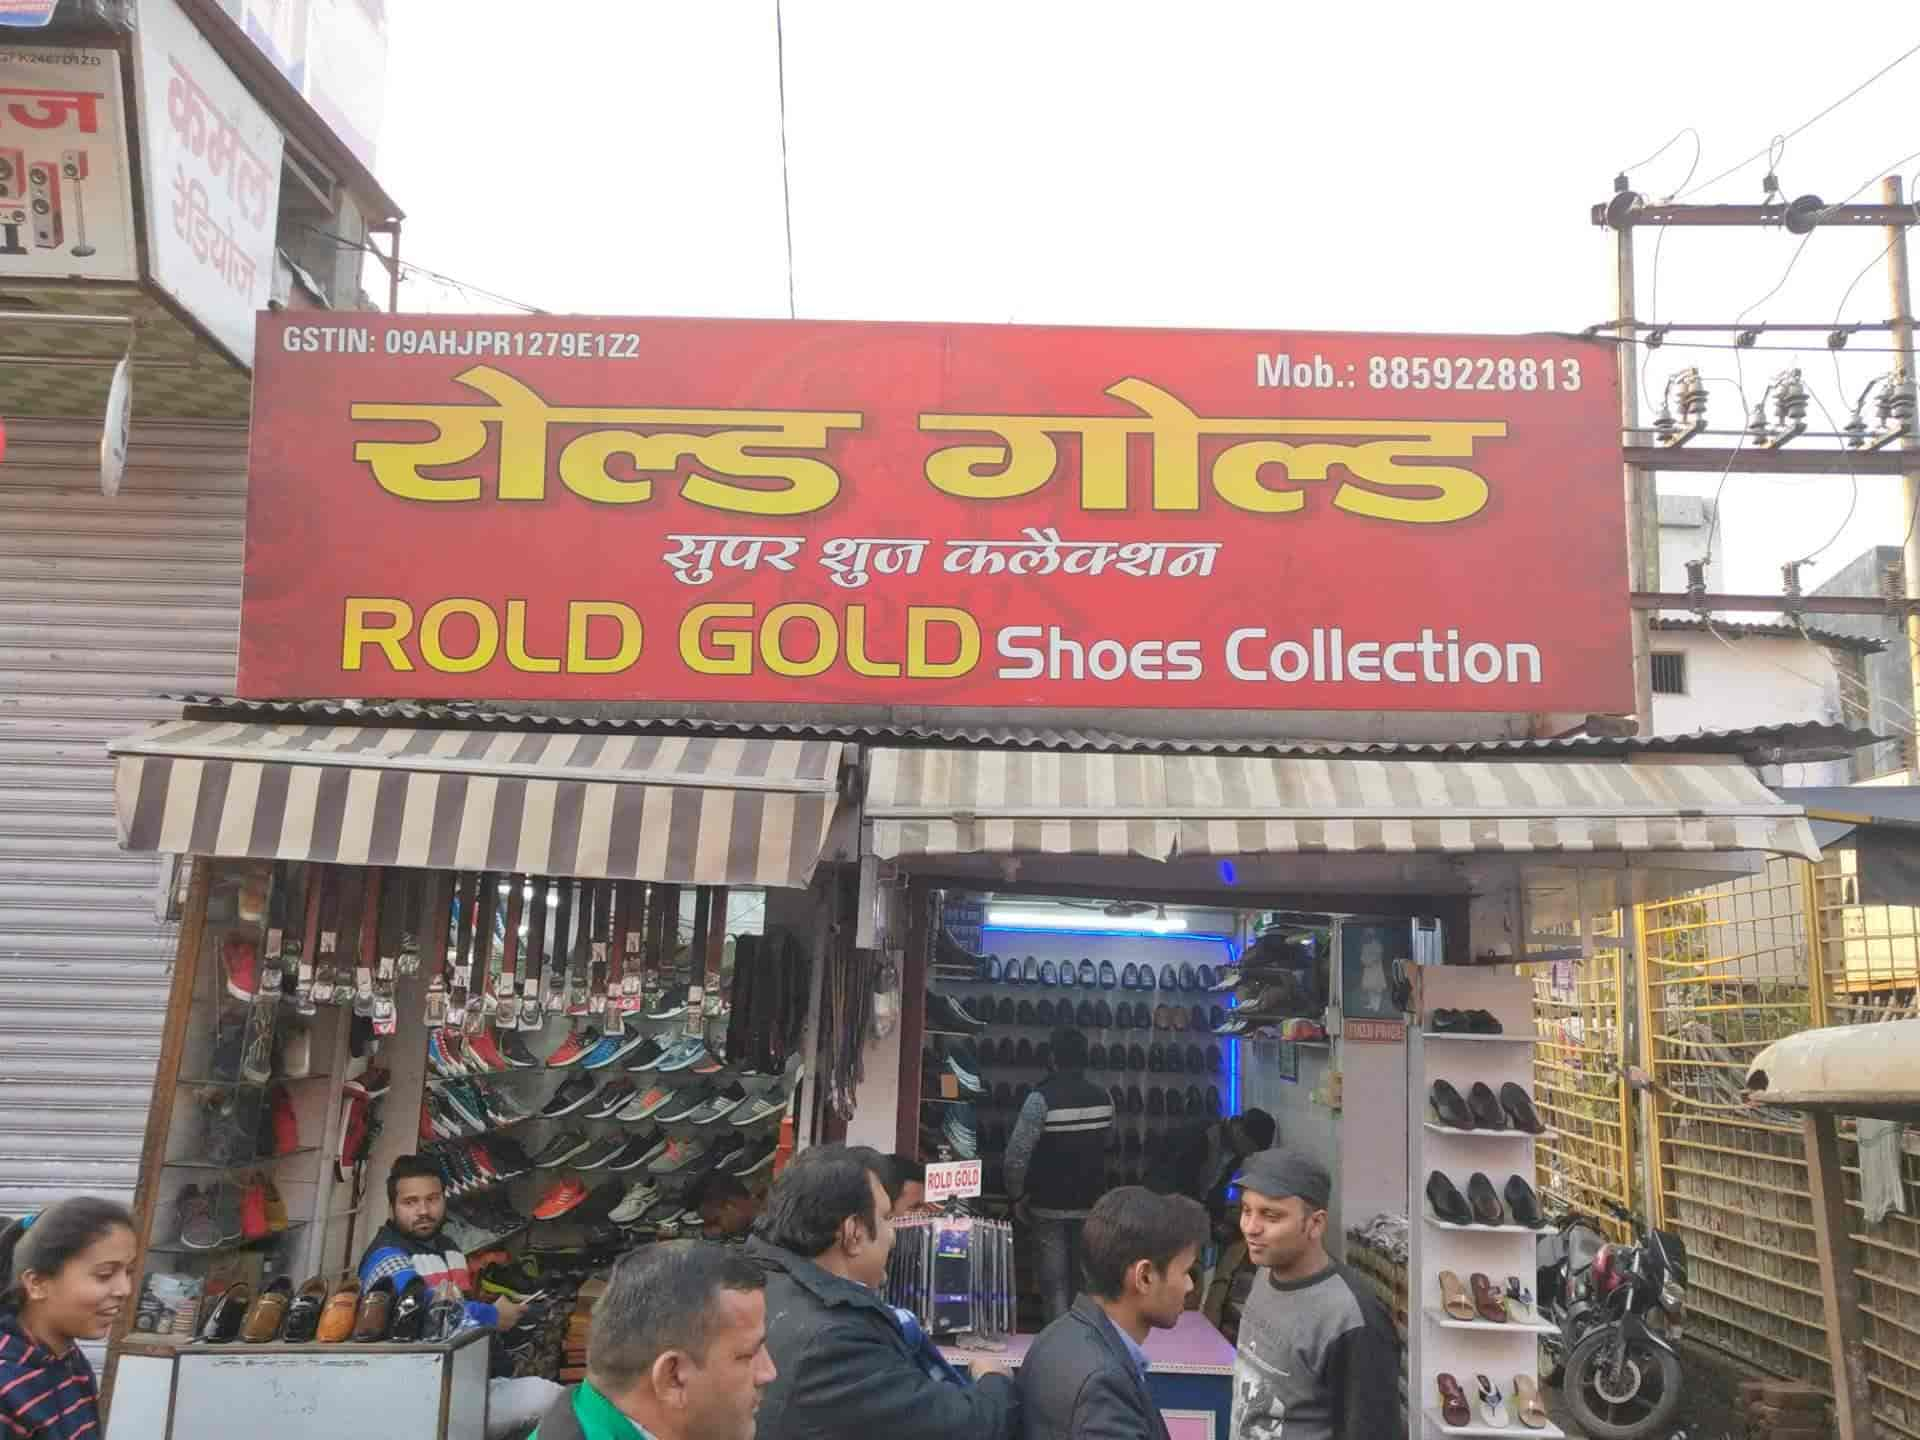 Rold Gold Stationroad Shoe Dealers In Moradabad Justdial